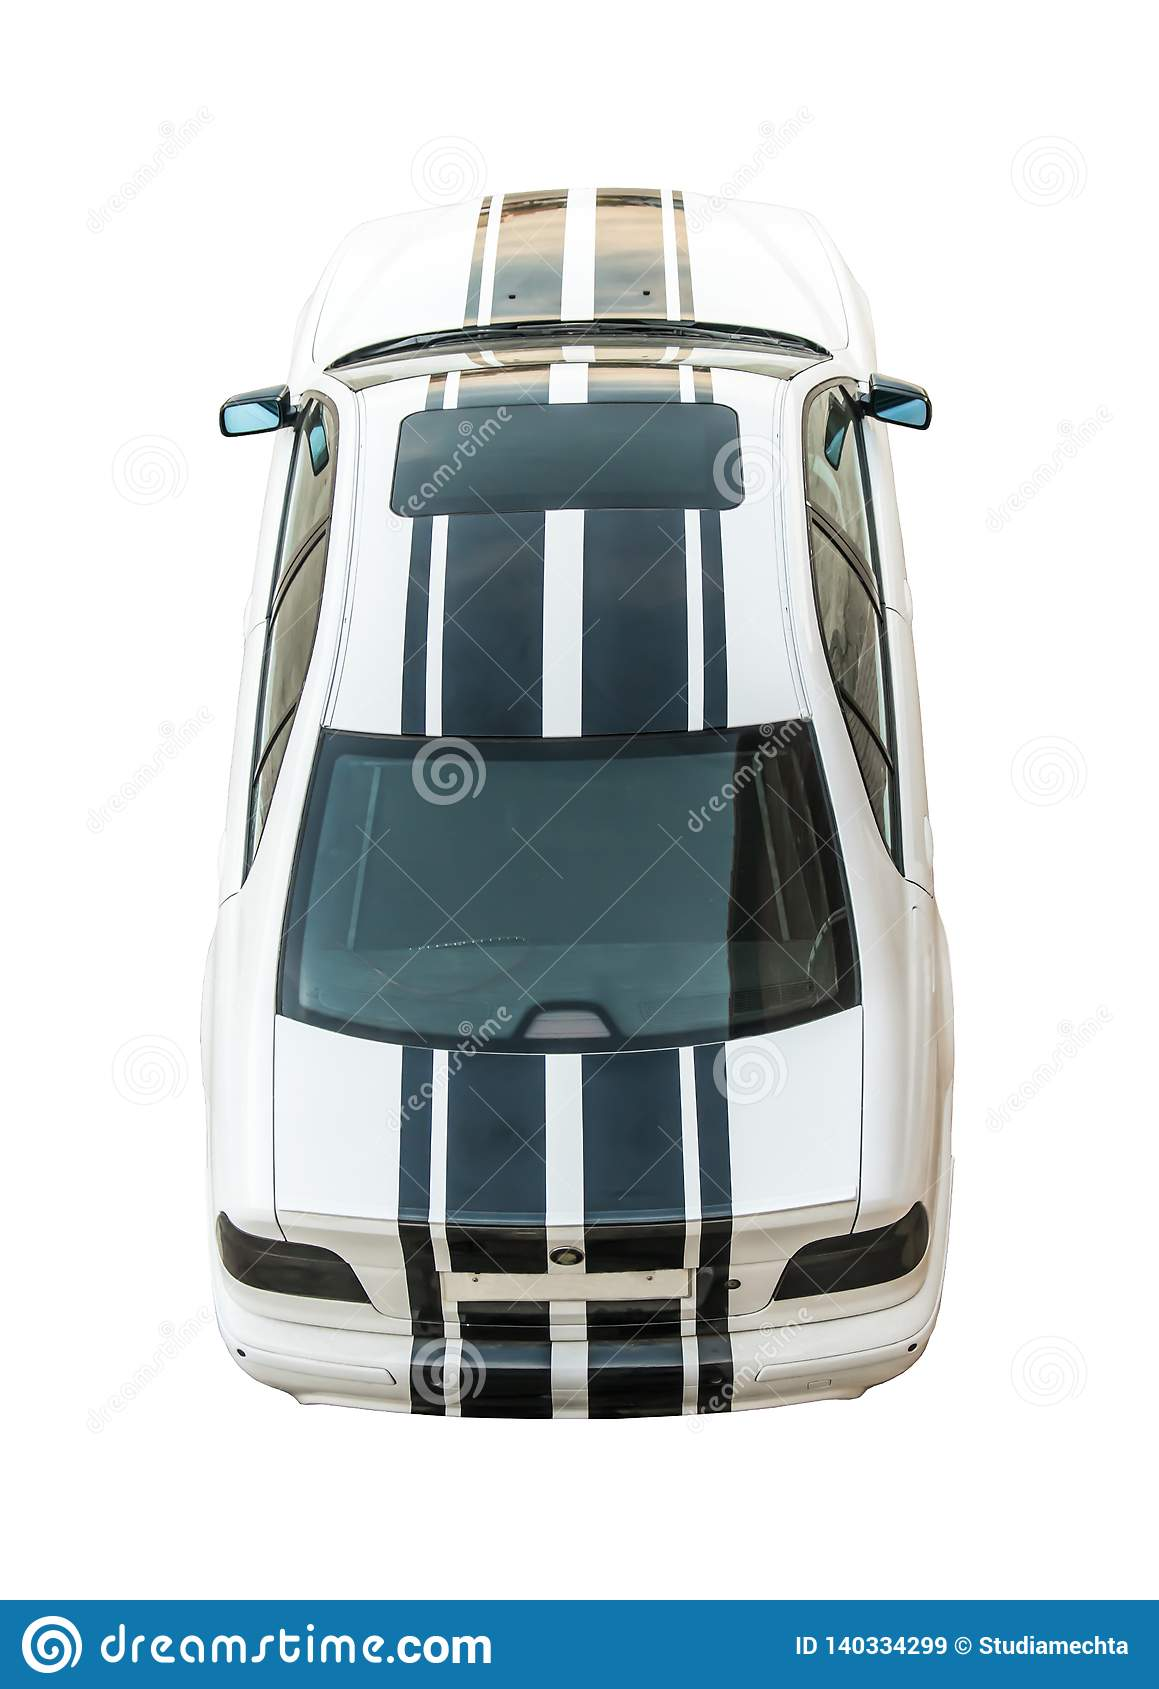 Stylish, modern, sporty white car with black stripes, cut out, isolated on white background